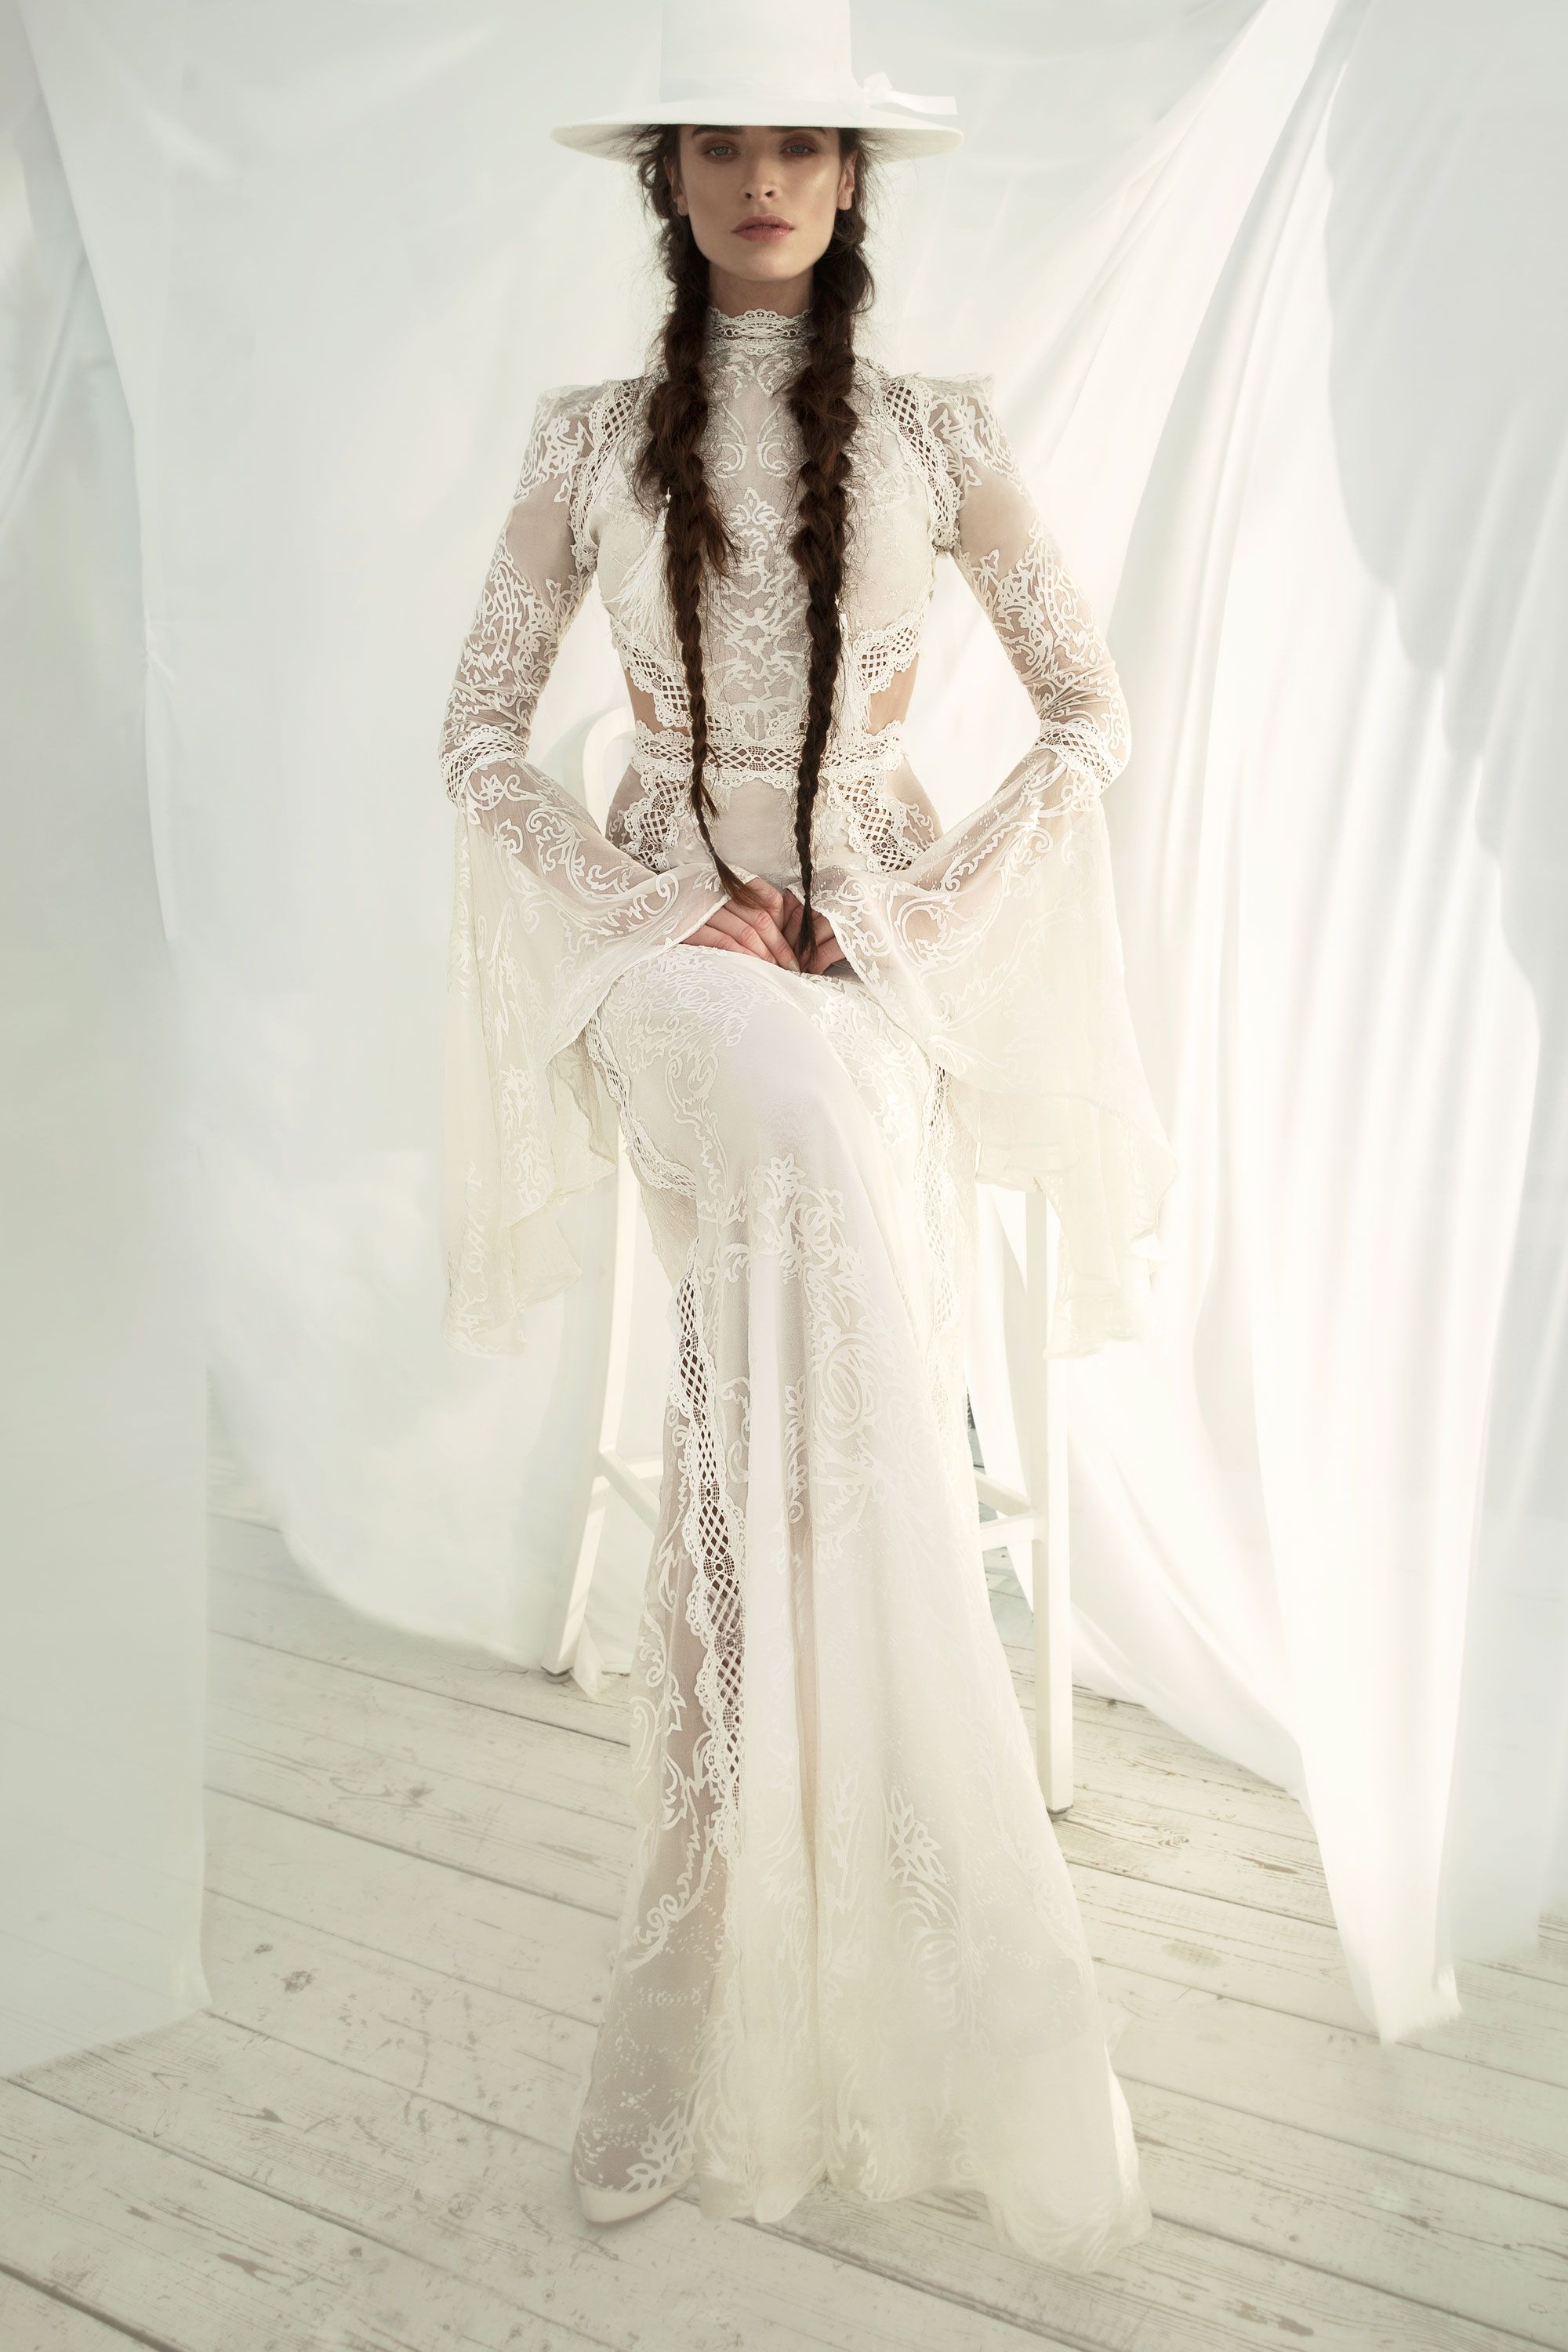 GREAT VICTORIA - Can this Wedding gown get any more epic? For the ...